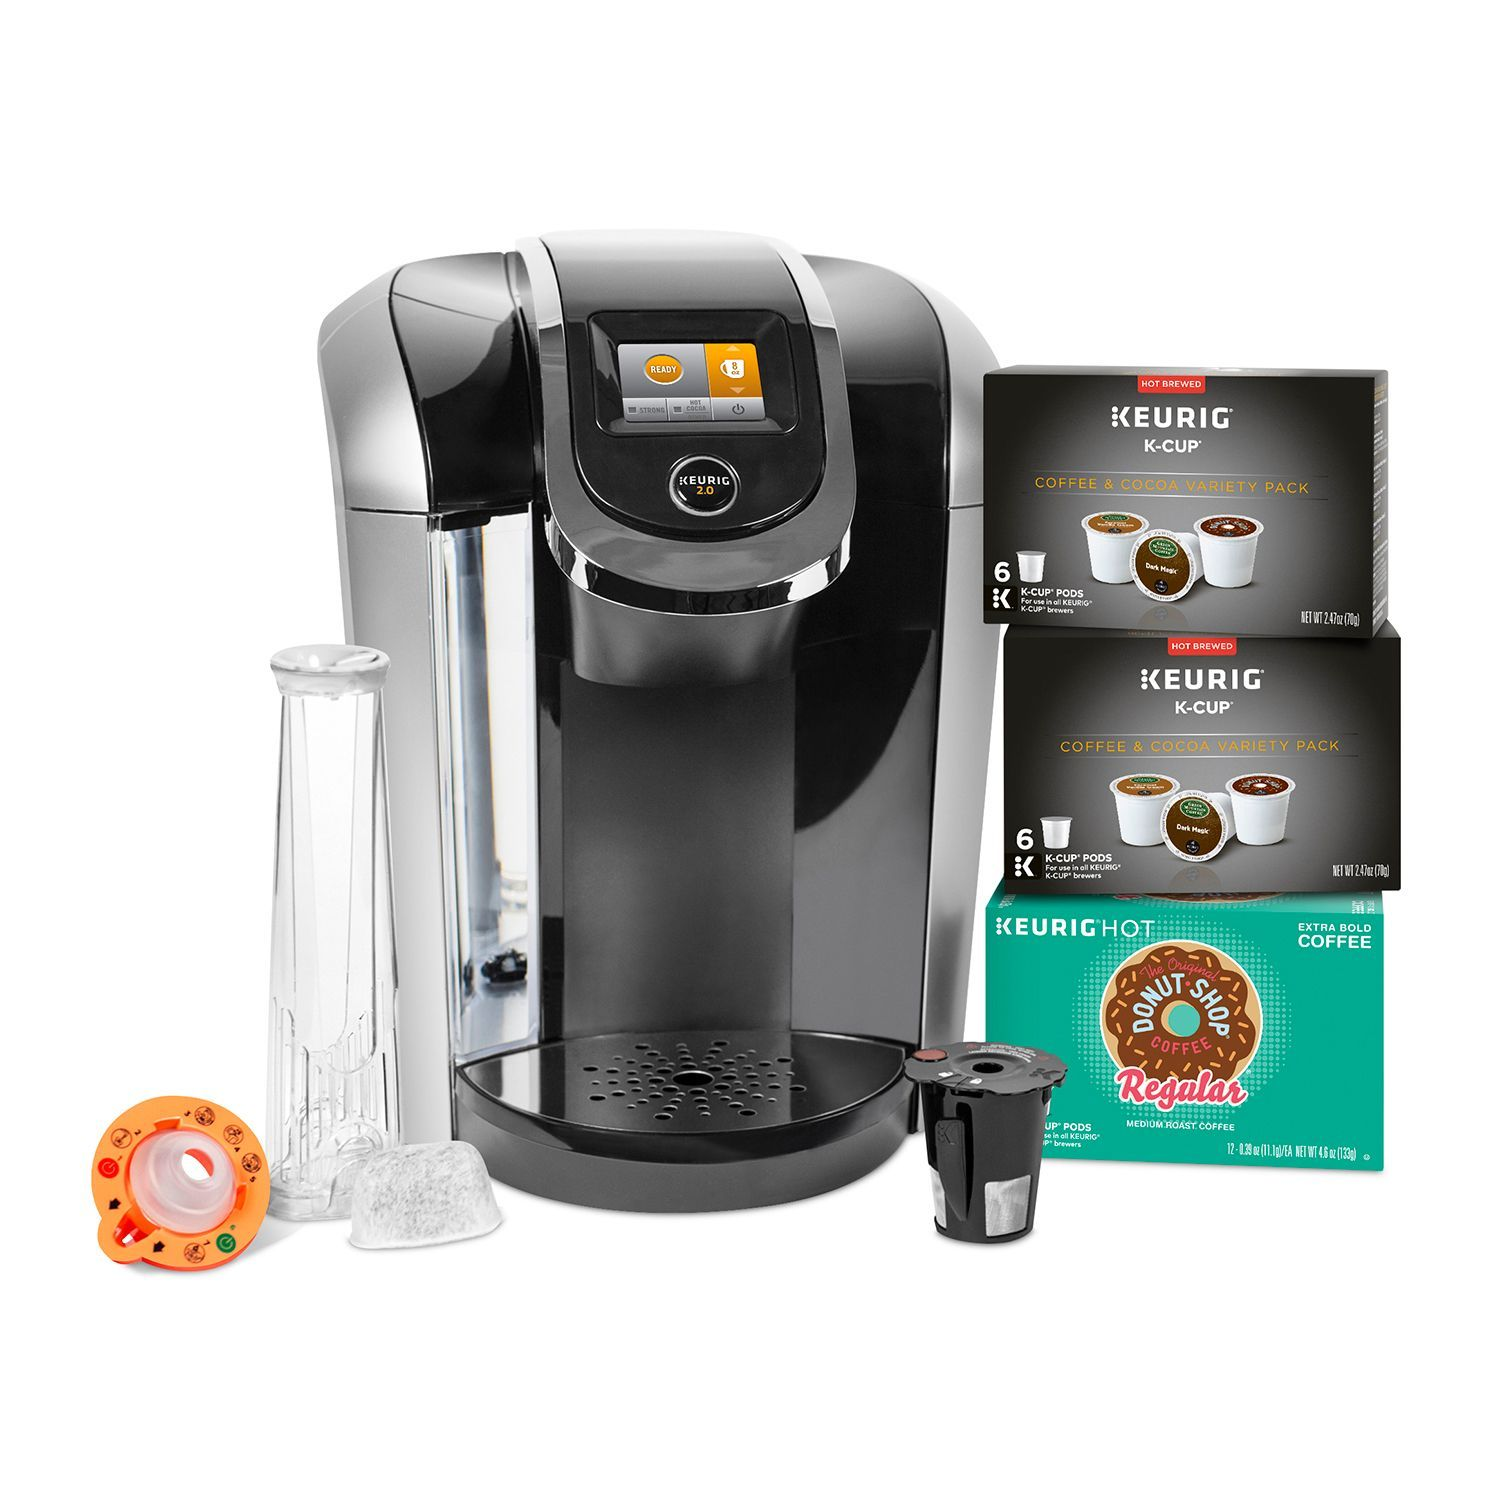 Coffee Maker For Pods : Keurig K425S Coffee Maker with 24 K-Cup Pods & Reusable K-Cup 2.0 Coffee Filter - Coffee Makers ...